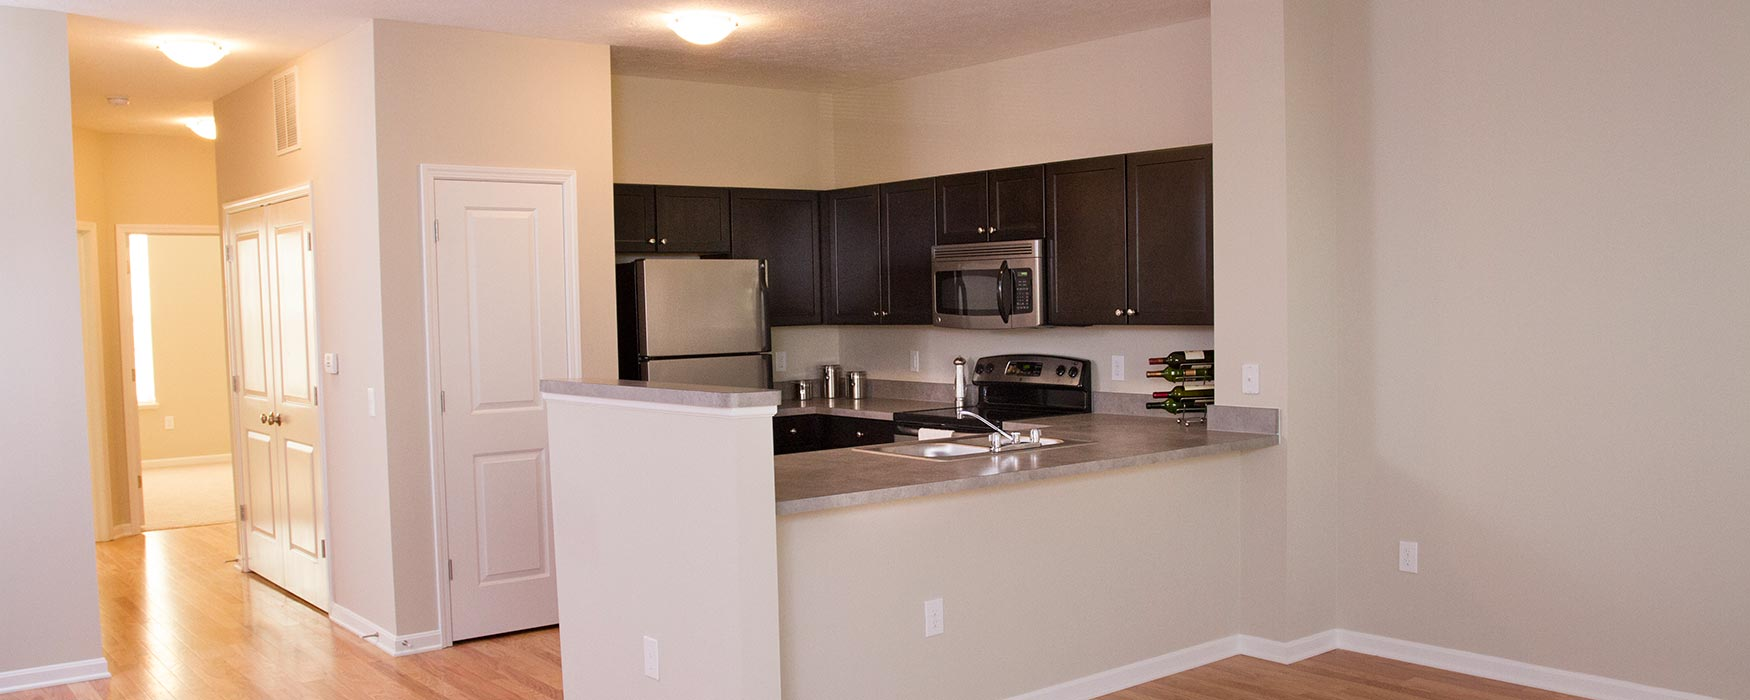 LC Preserve Crossing | Gahanna Apartments | Greystone II Kitchen